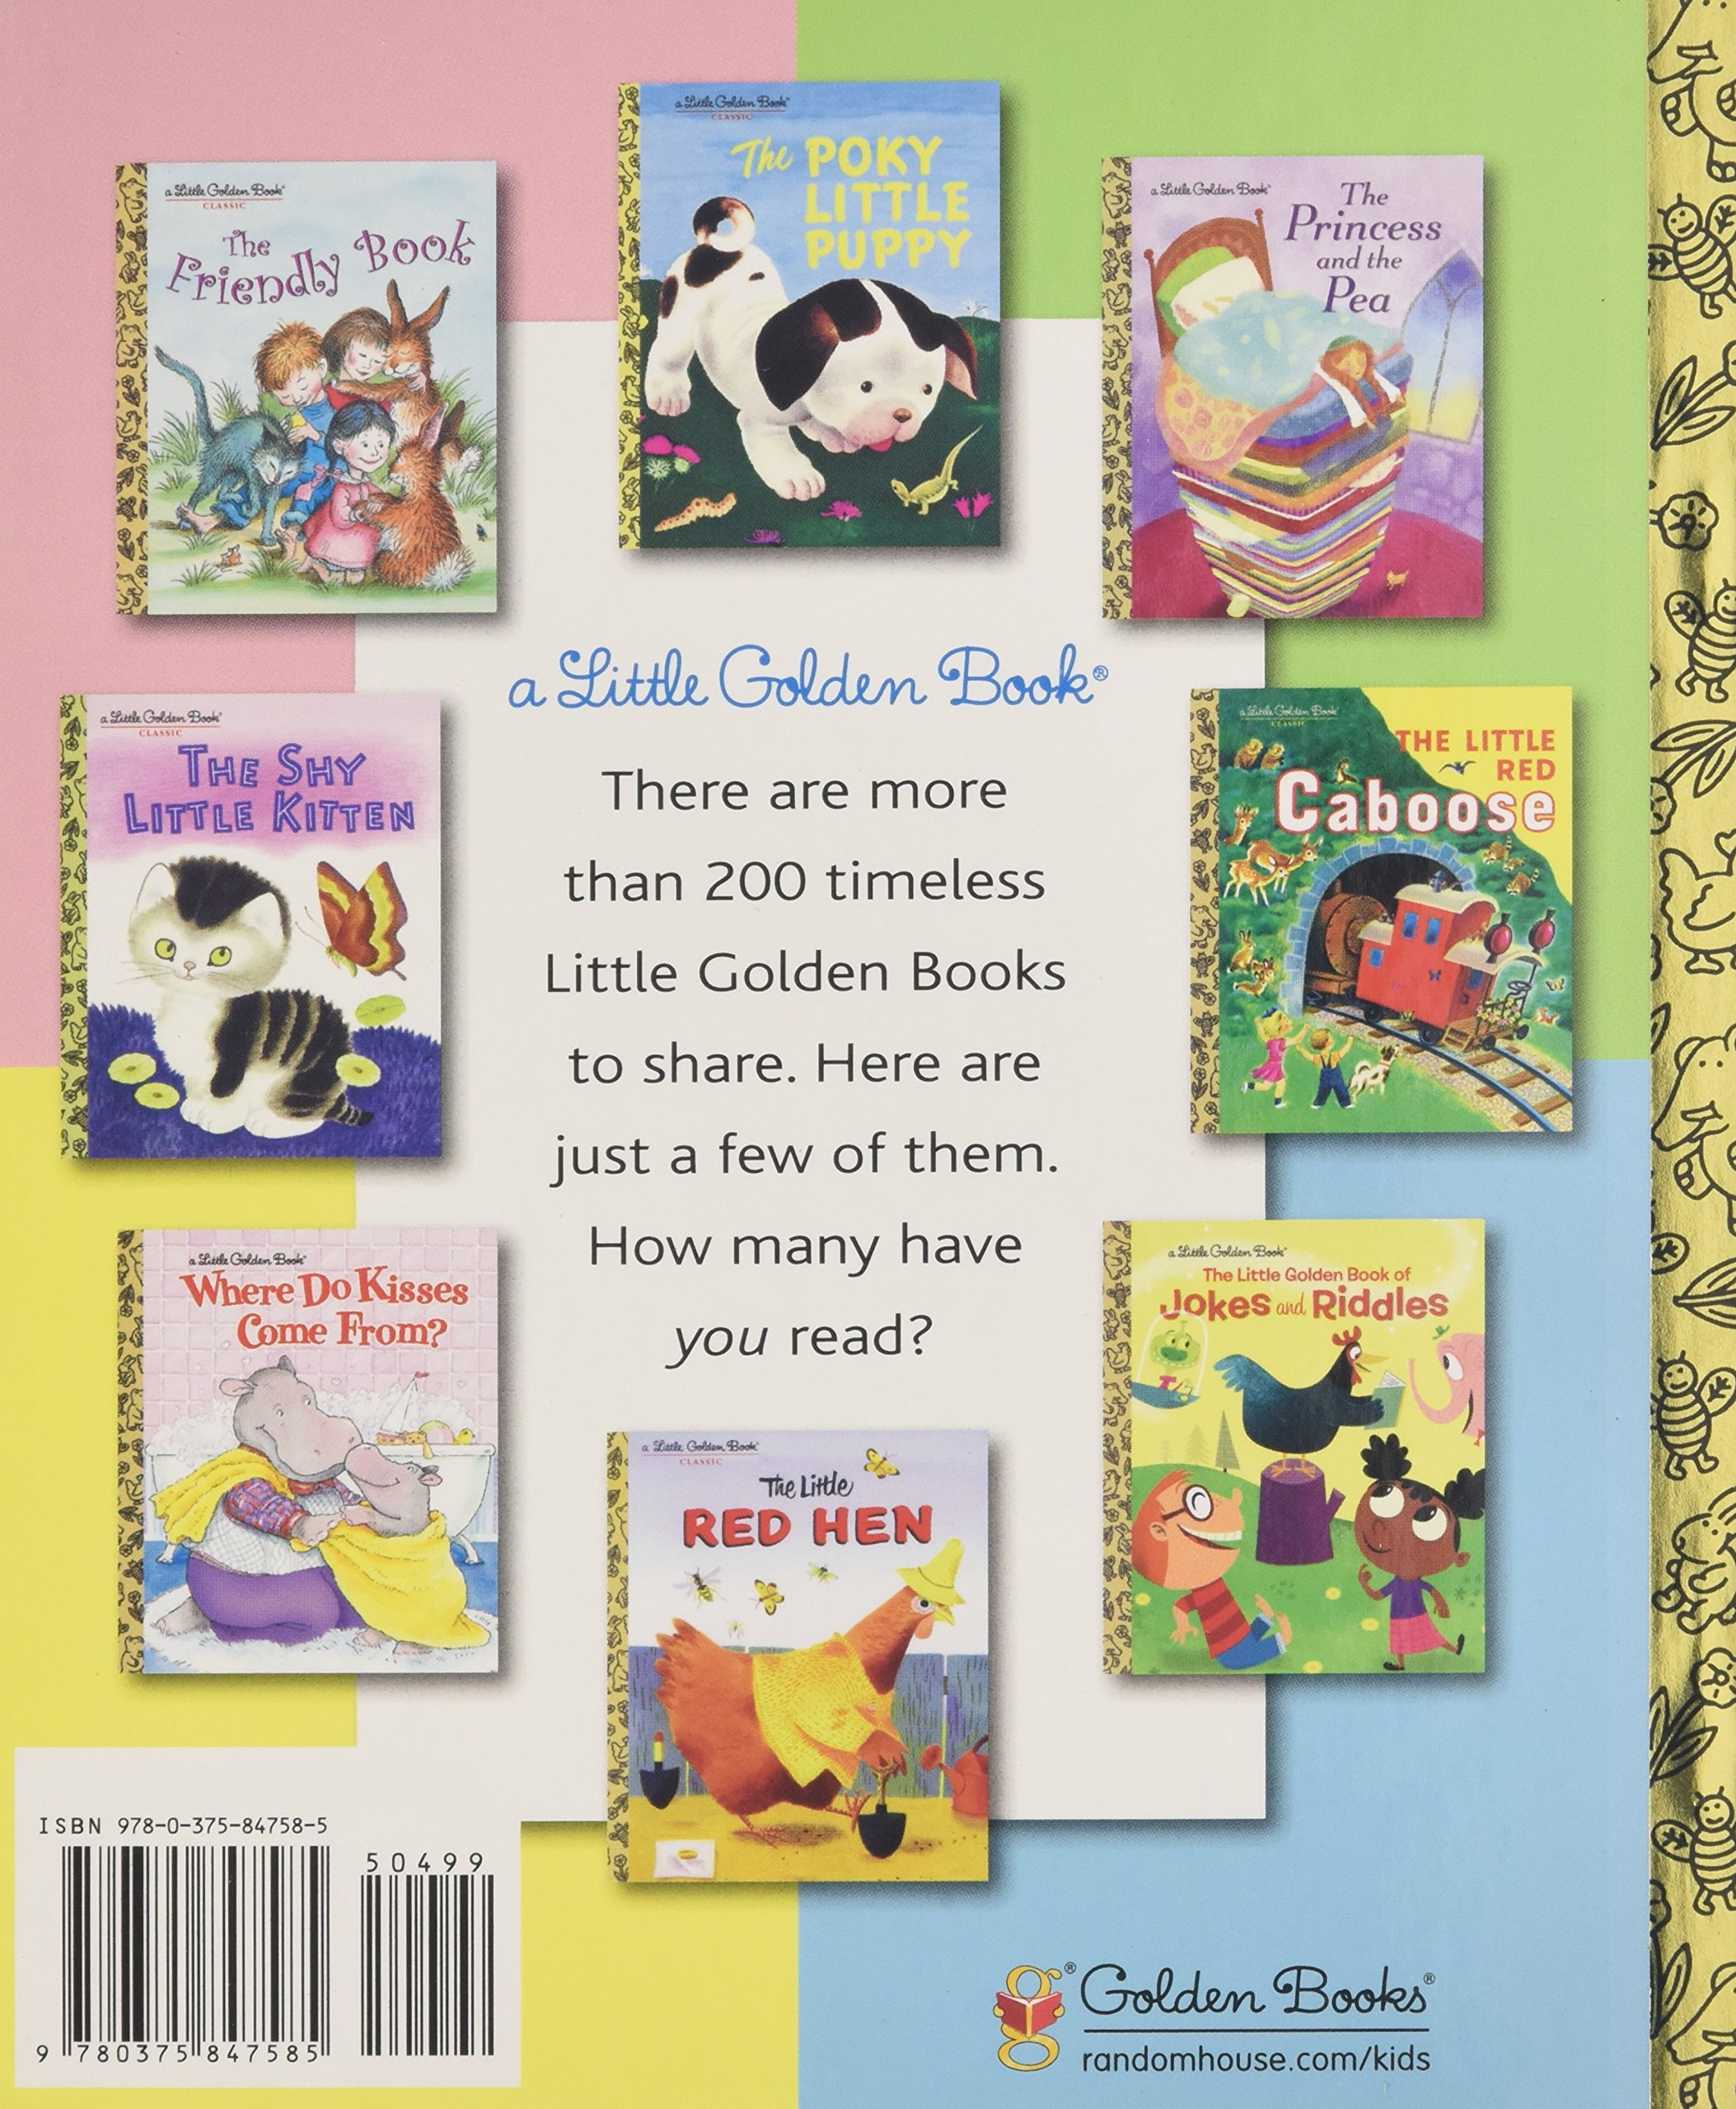 Amazon: The Please And Thank You Book (little Golden Book)  (9780375847585): Barbara Shook Hazen, Emilie Chollat: Books